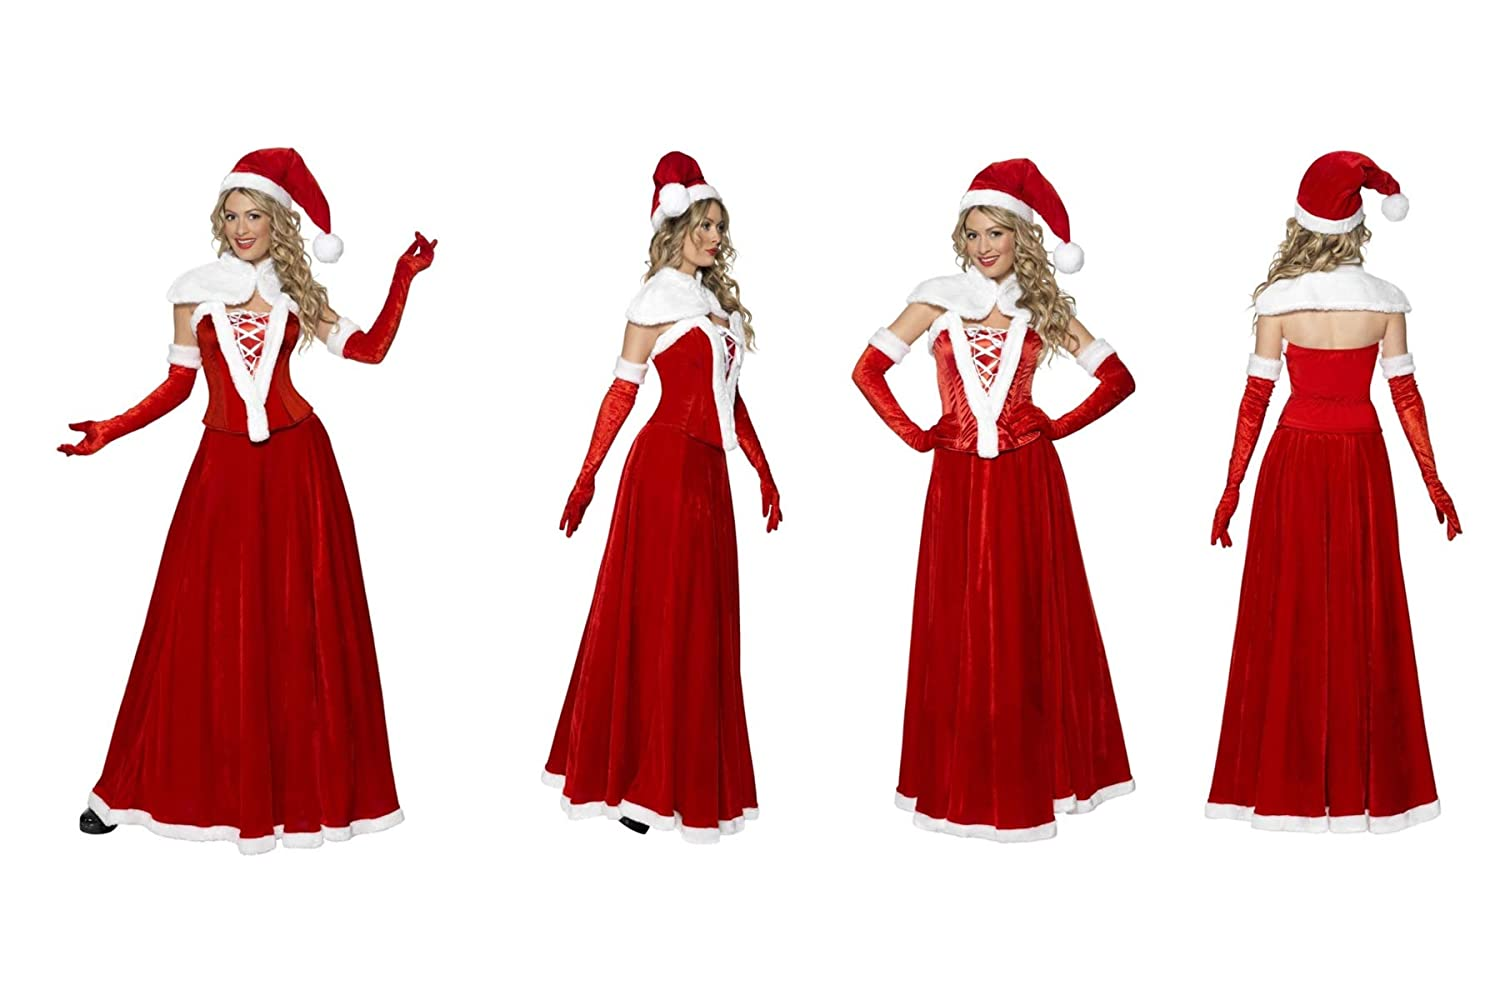 Fancy Dress World – Donna Sexy Lusso Miss Santa Costume – rosso INC Cappello, Mantello, Corsetto, Gonna e Guanti – Christmas Day Capodanno Fun -